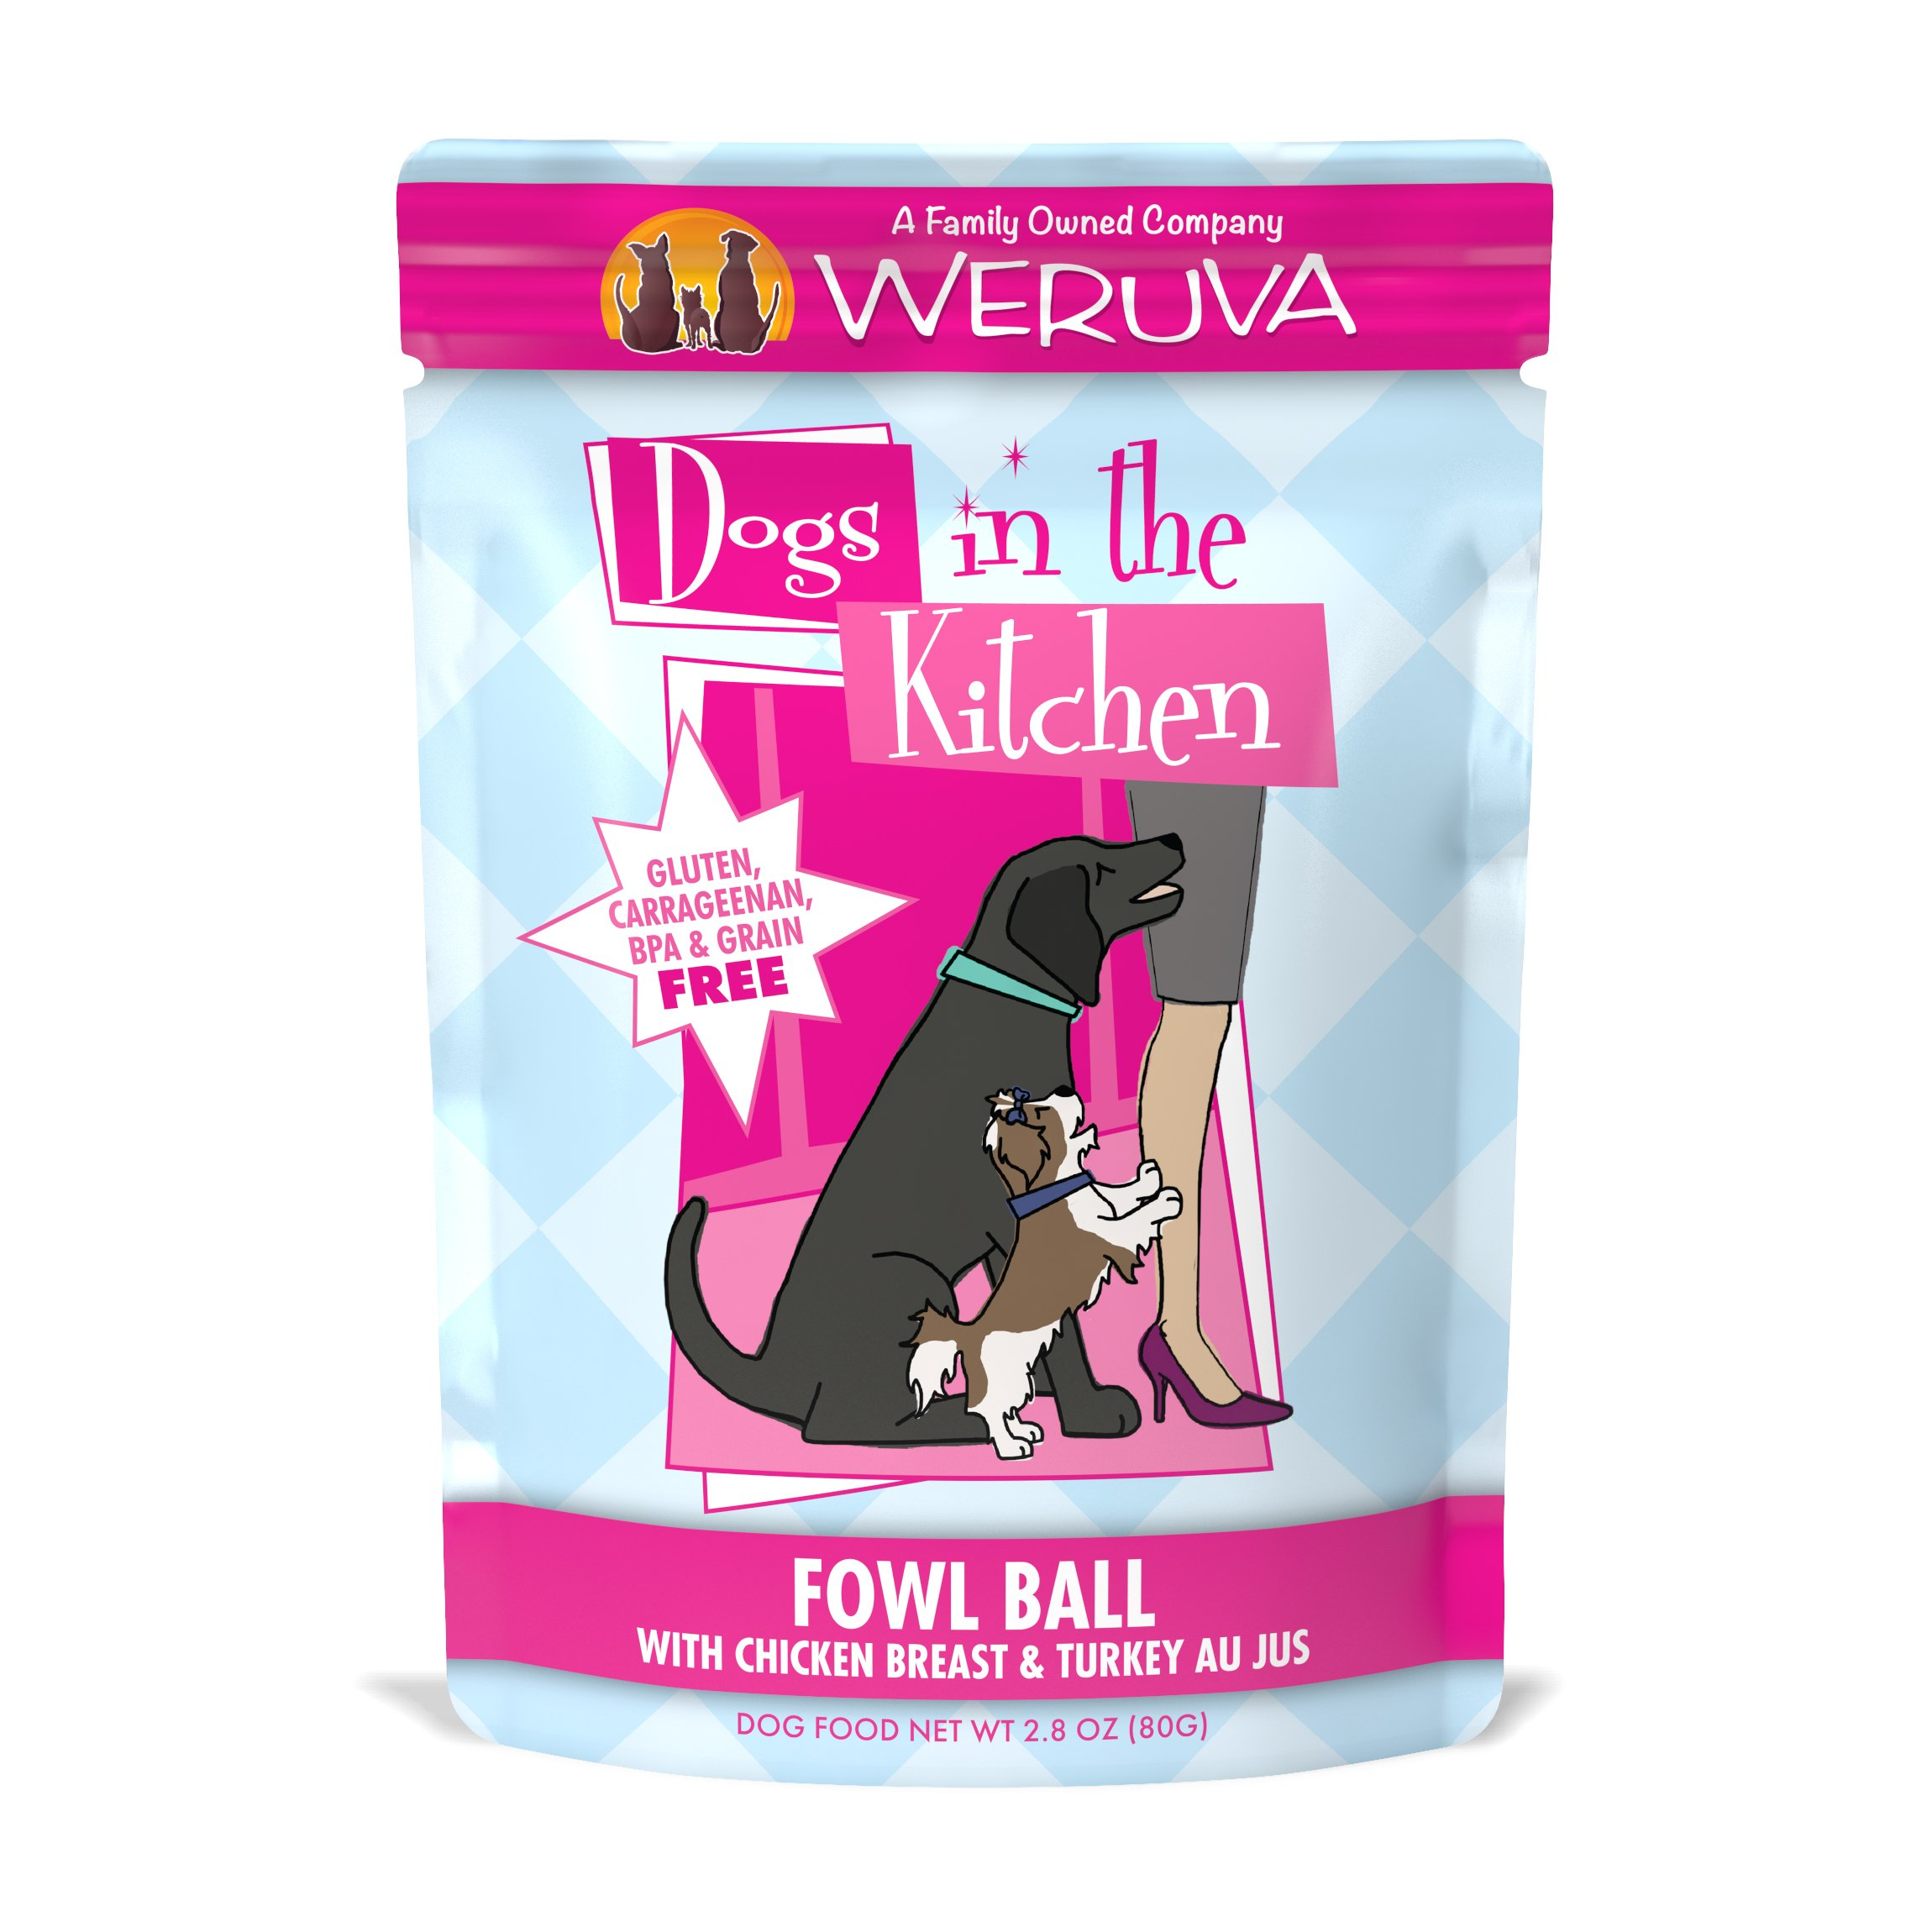 Weruva Dogs in the Kitchen, Fowl Ball with Chicken Breast & Turkey Au Jus Dog Food, 2.8oz Pouch (Pack of 12)